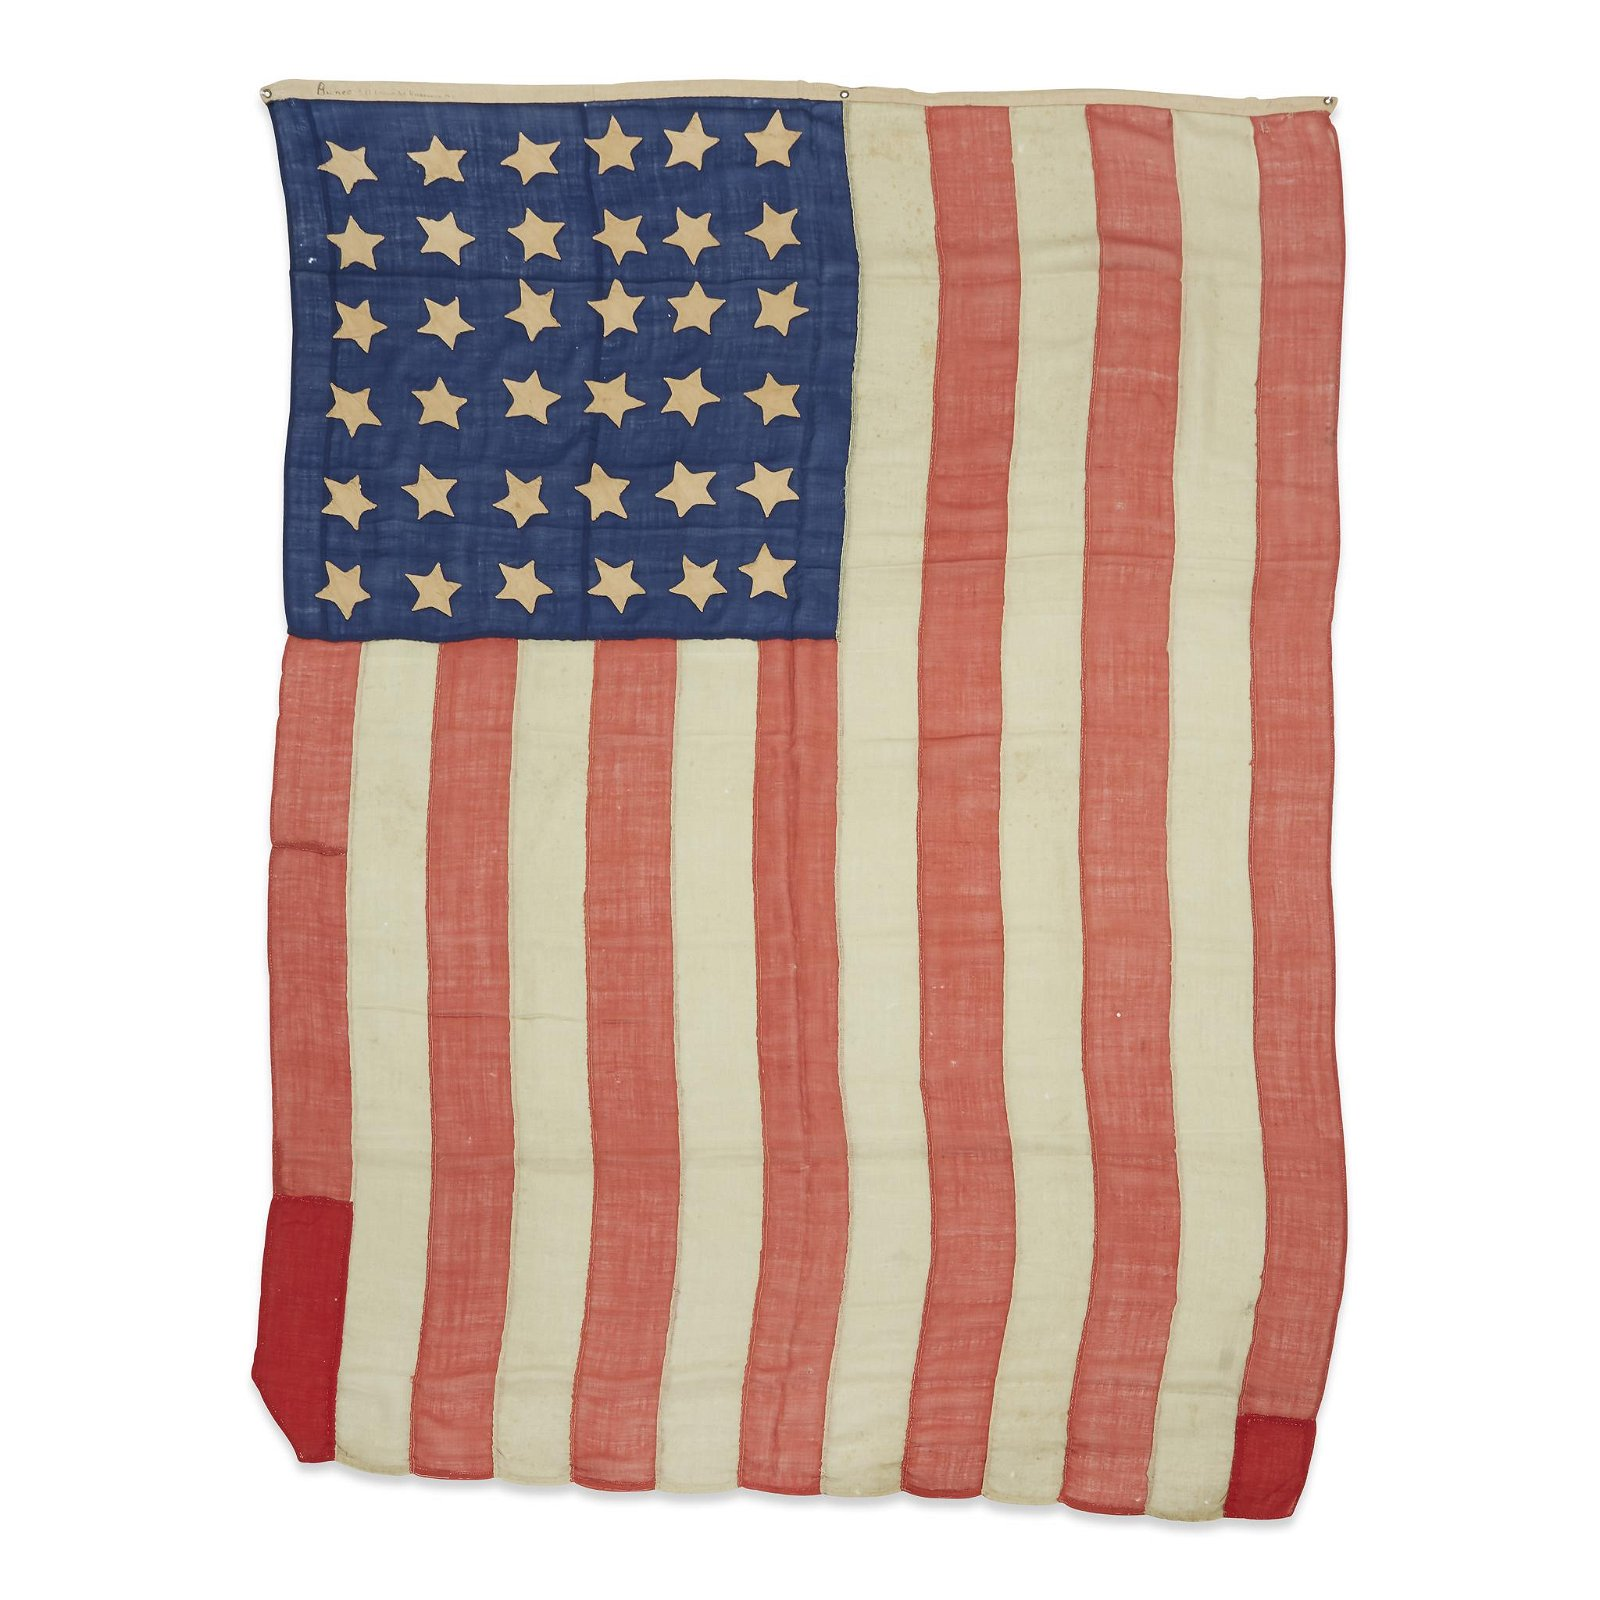 A 36-Star American Flag associated with the funeral